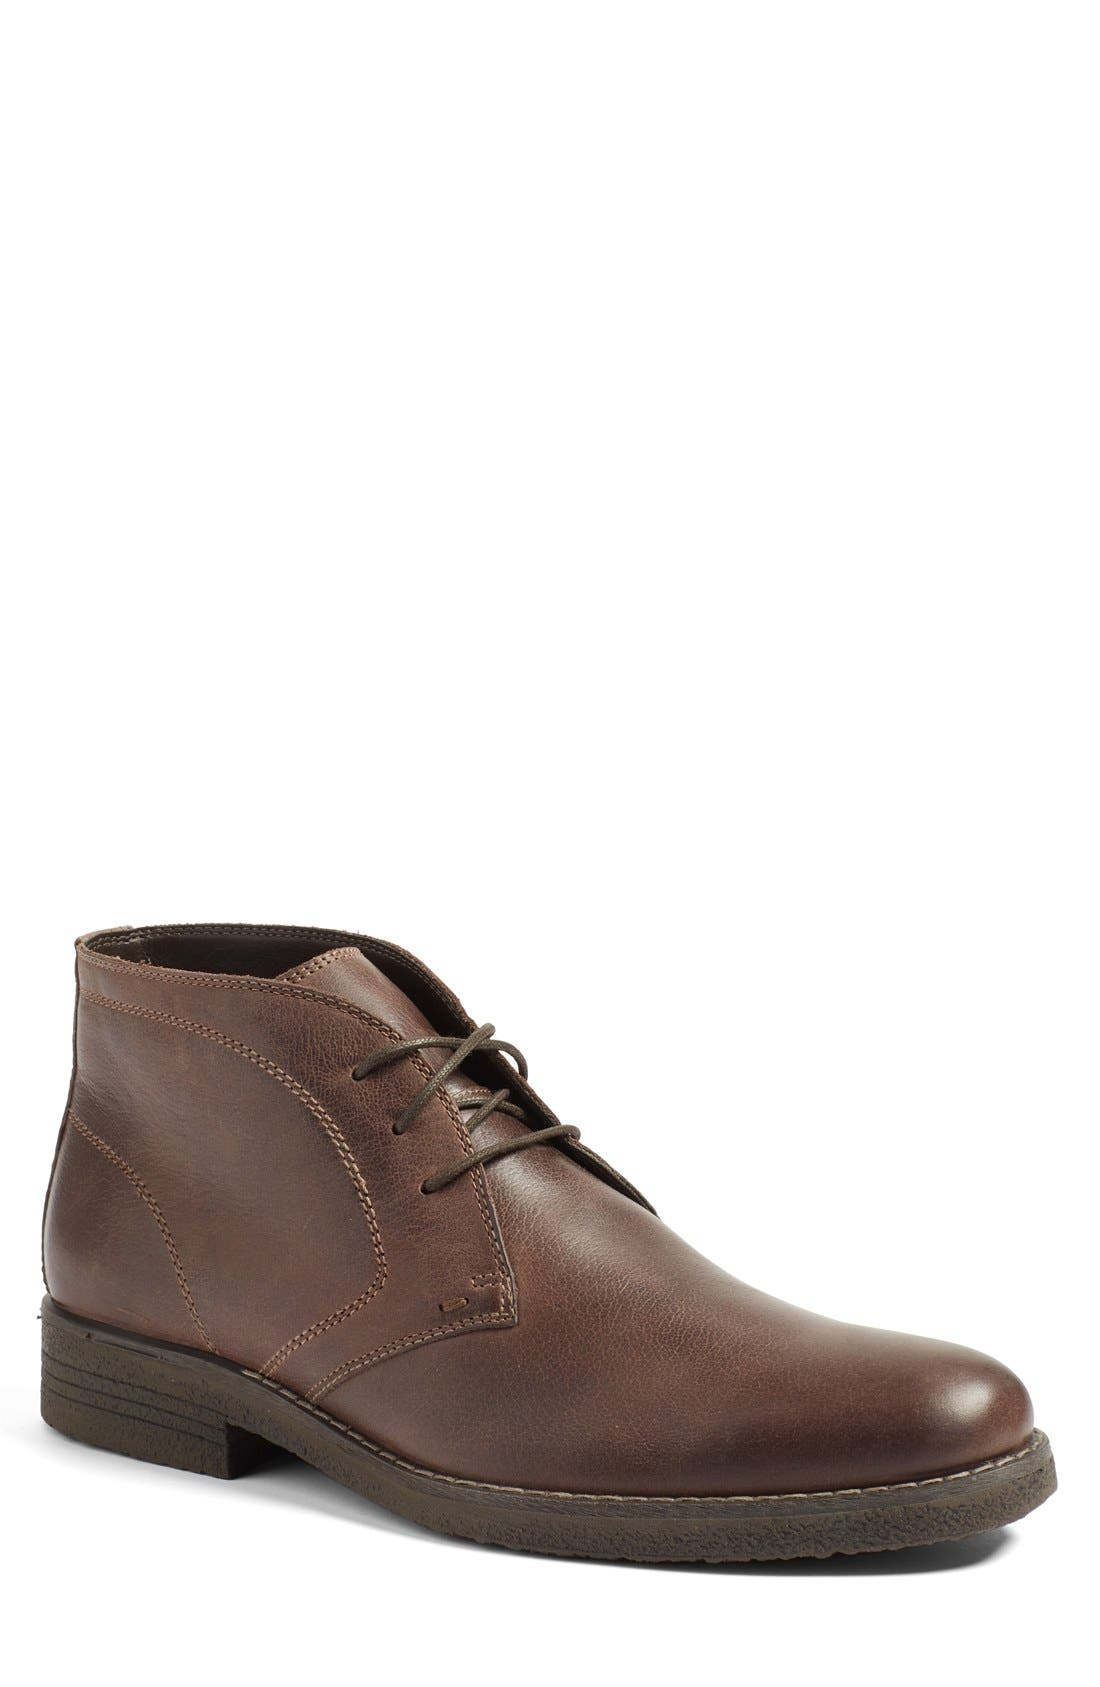 Main Image - 1901 'Tyler' Chukka Boot (Men)